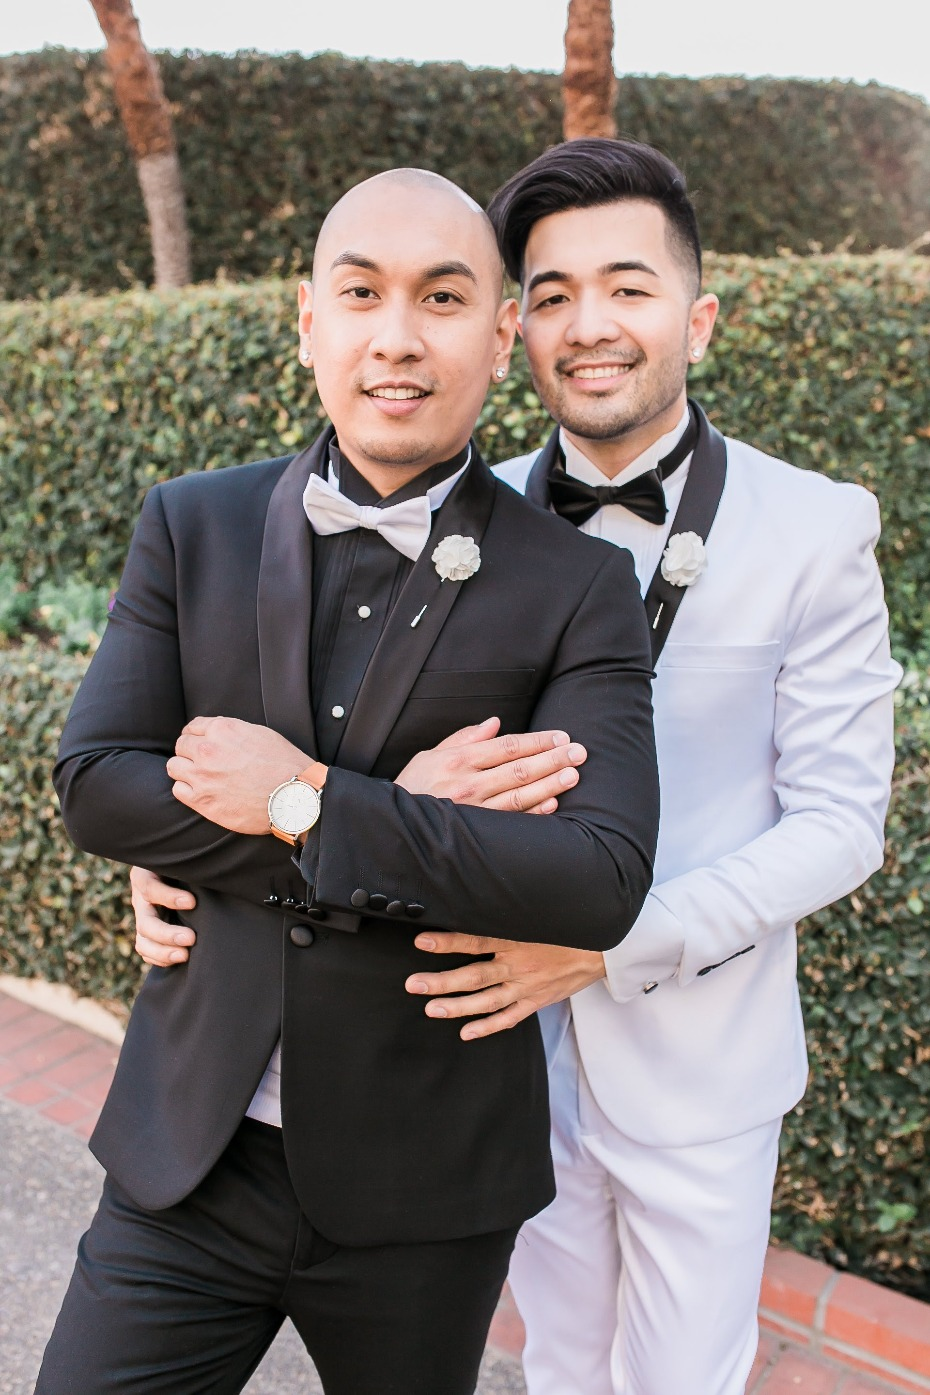 Glam black and white wedding for the Mr. and Mr.